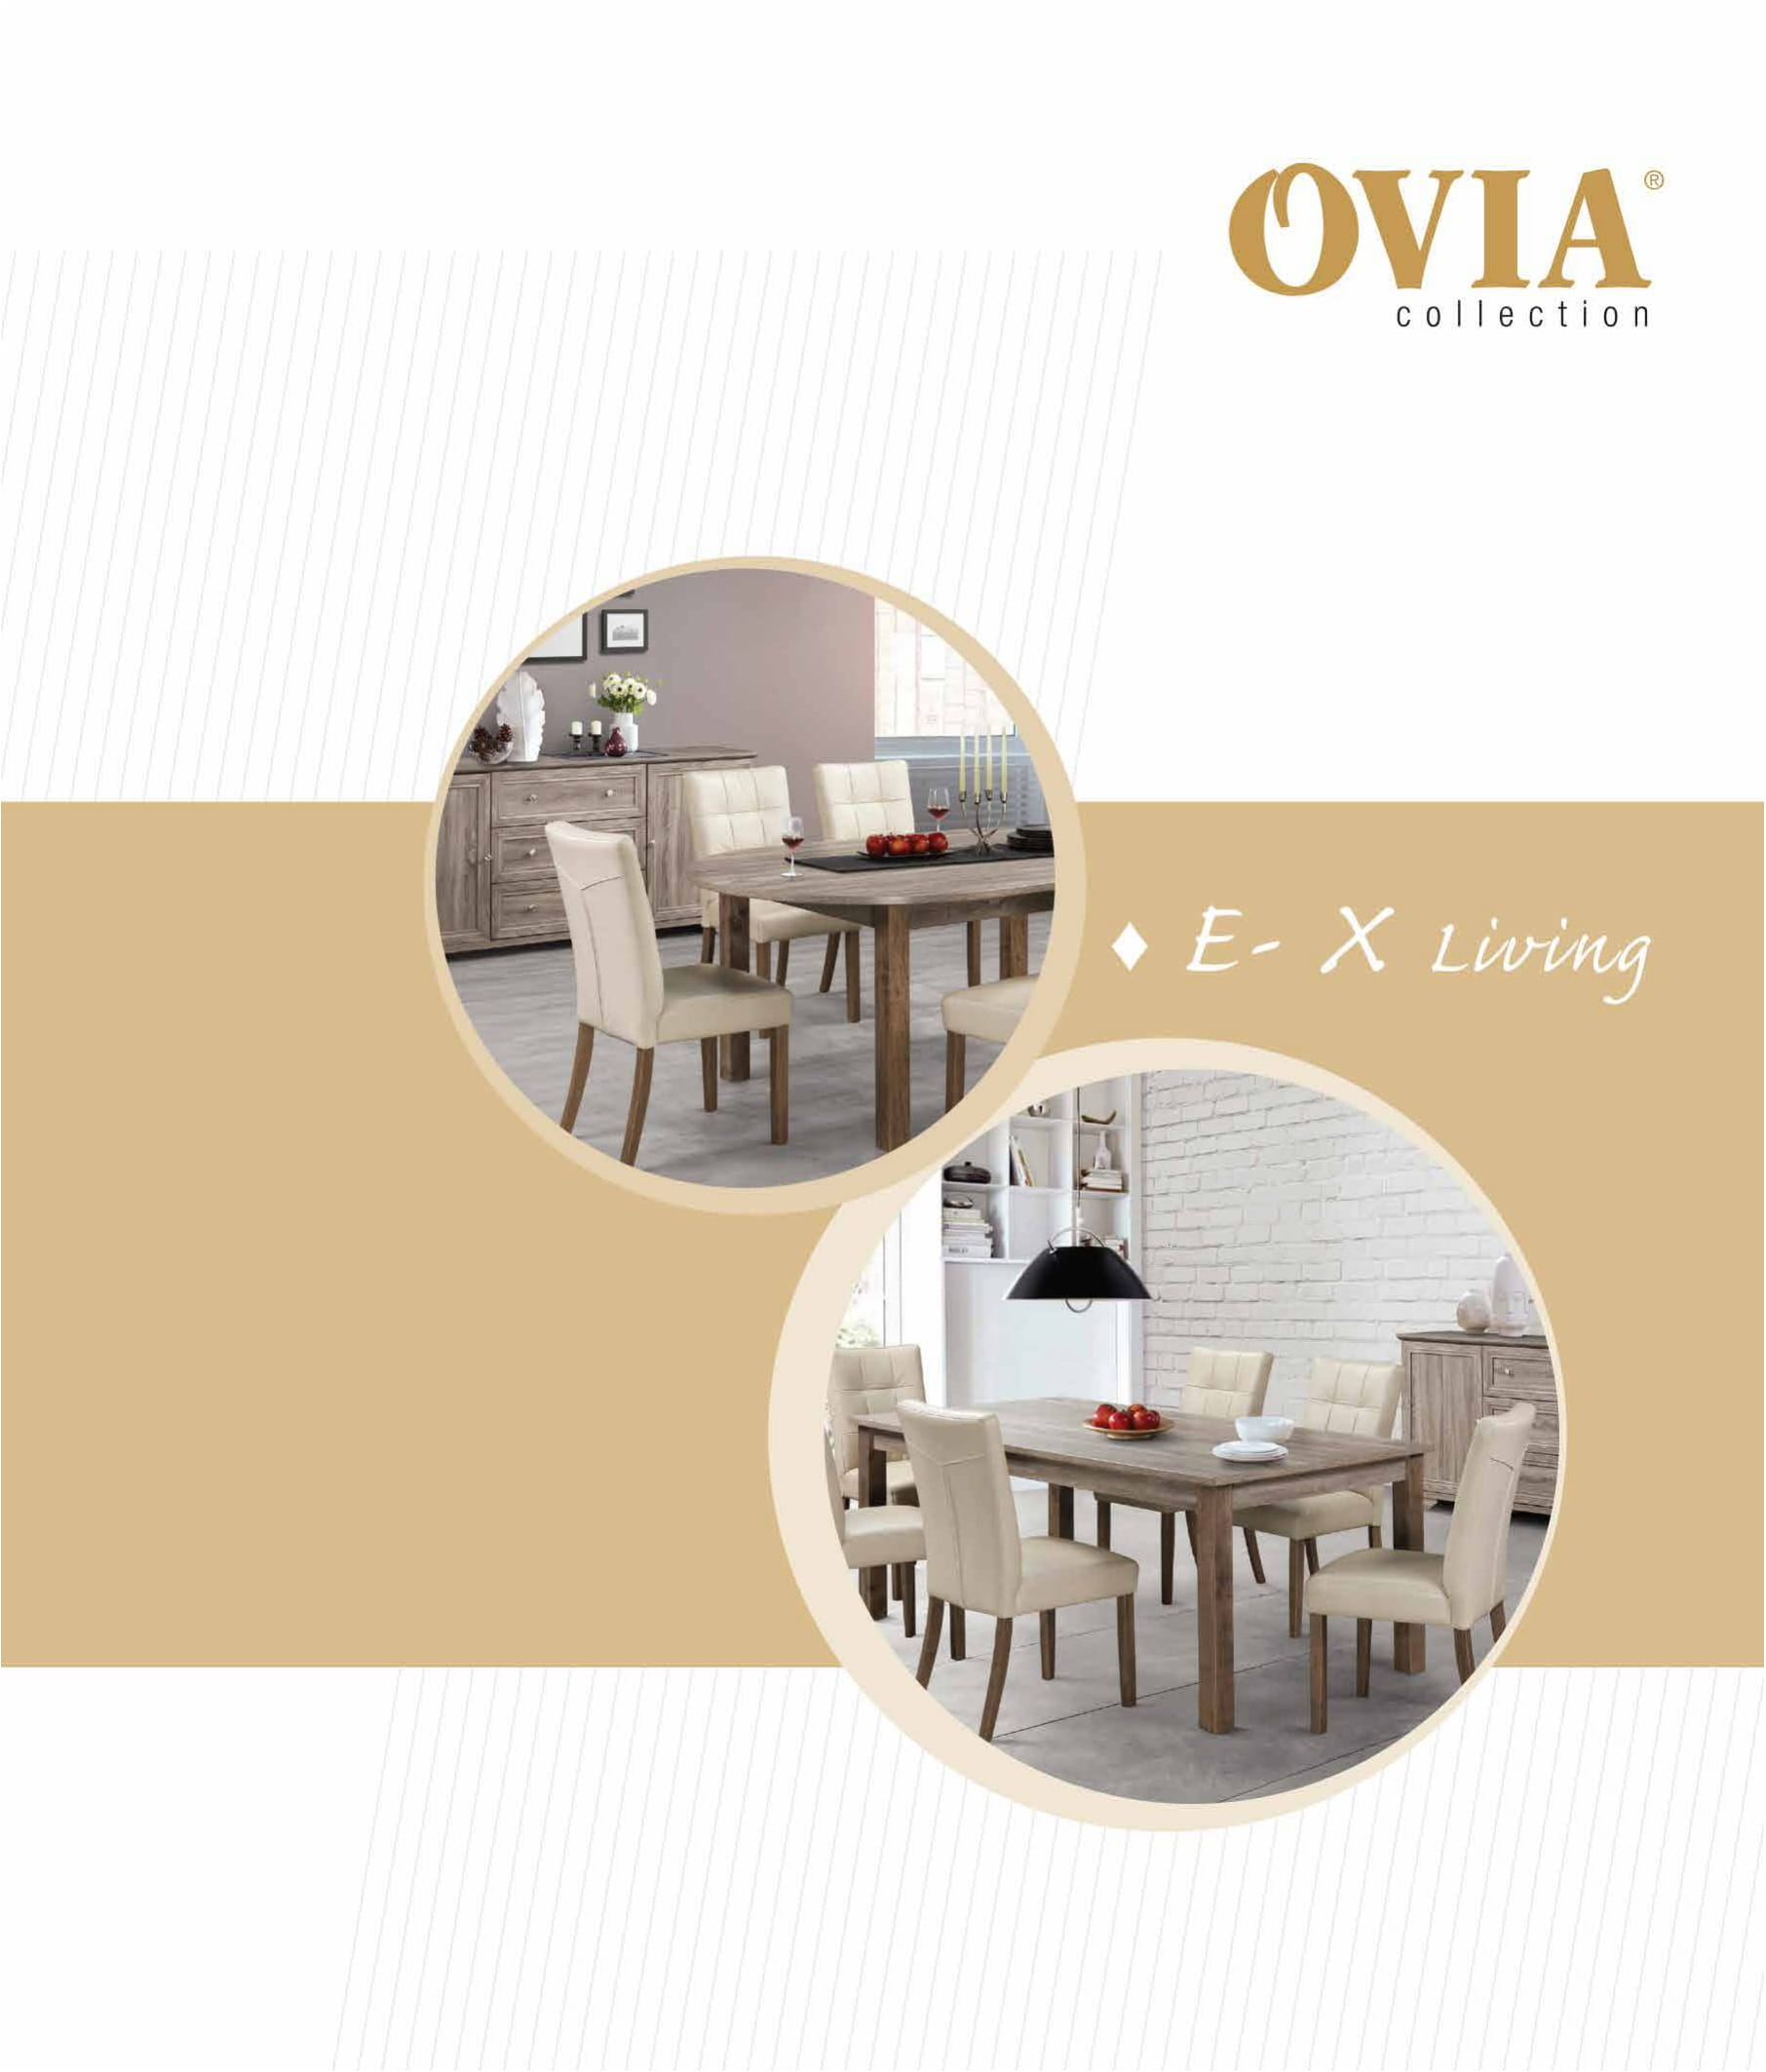 Ovia Collection 4-101